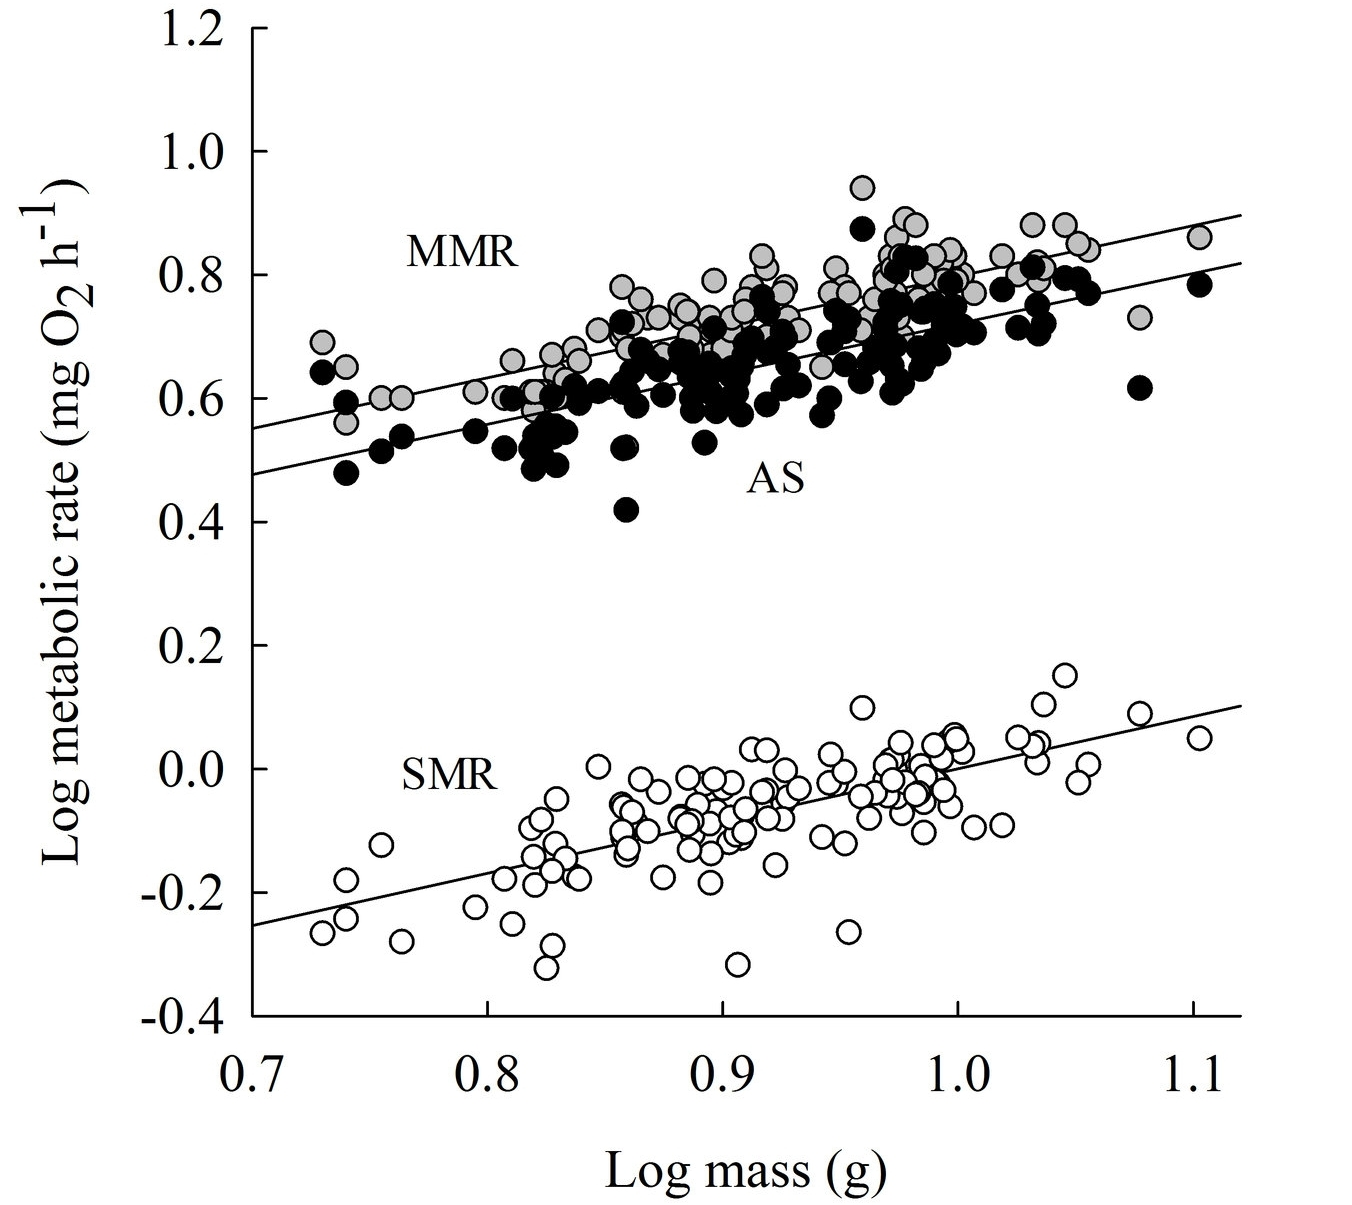 Relationships between log10-transformed standard metabolic rate (SMR), maximum metabolic rate (MMR), aerobic scope (AS) and body mass (g) of juvenile brown trout.